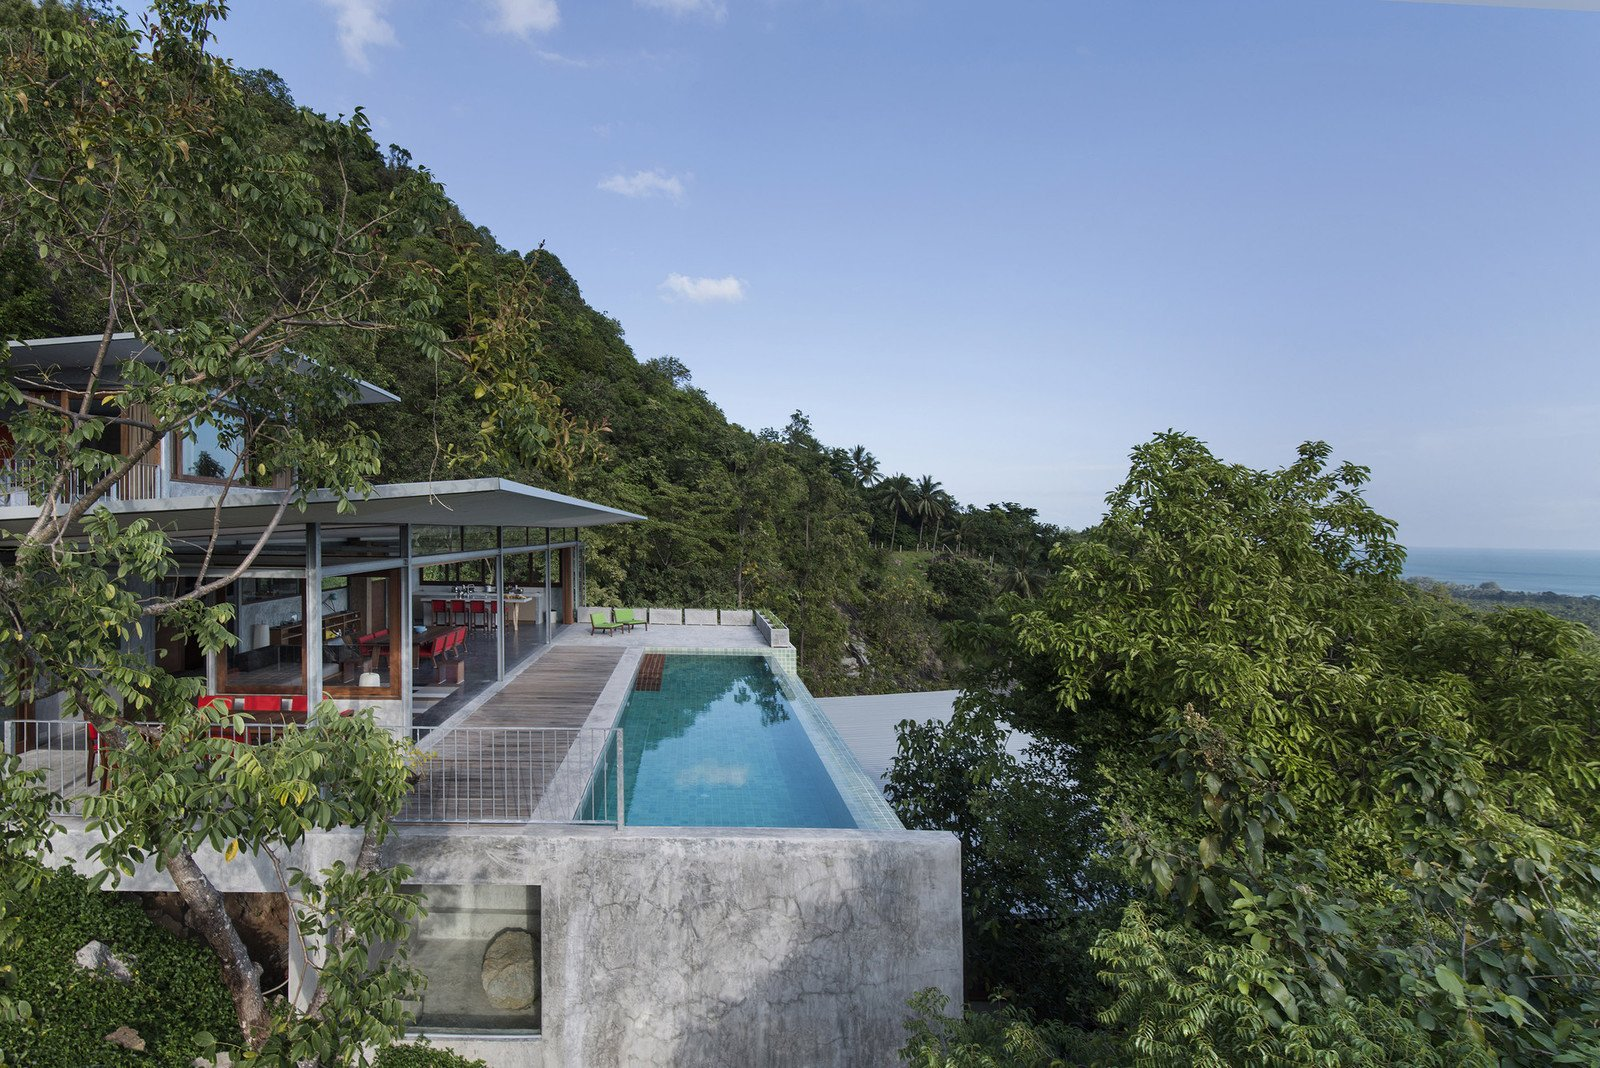 Infinity Pools, Tubs, Shower, Wood Patio, Porch, Deck, Trees, Back Yard, Metal Fences, Wall, Outdoor, Slope, and Swimming Pools, Tubs, Shower  Photos from Take a Trip to This Photographer-Designed Concrete Home in Thailand